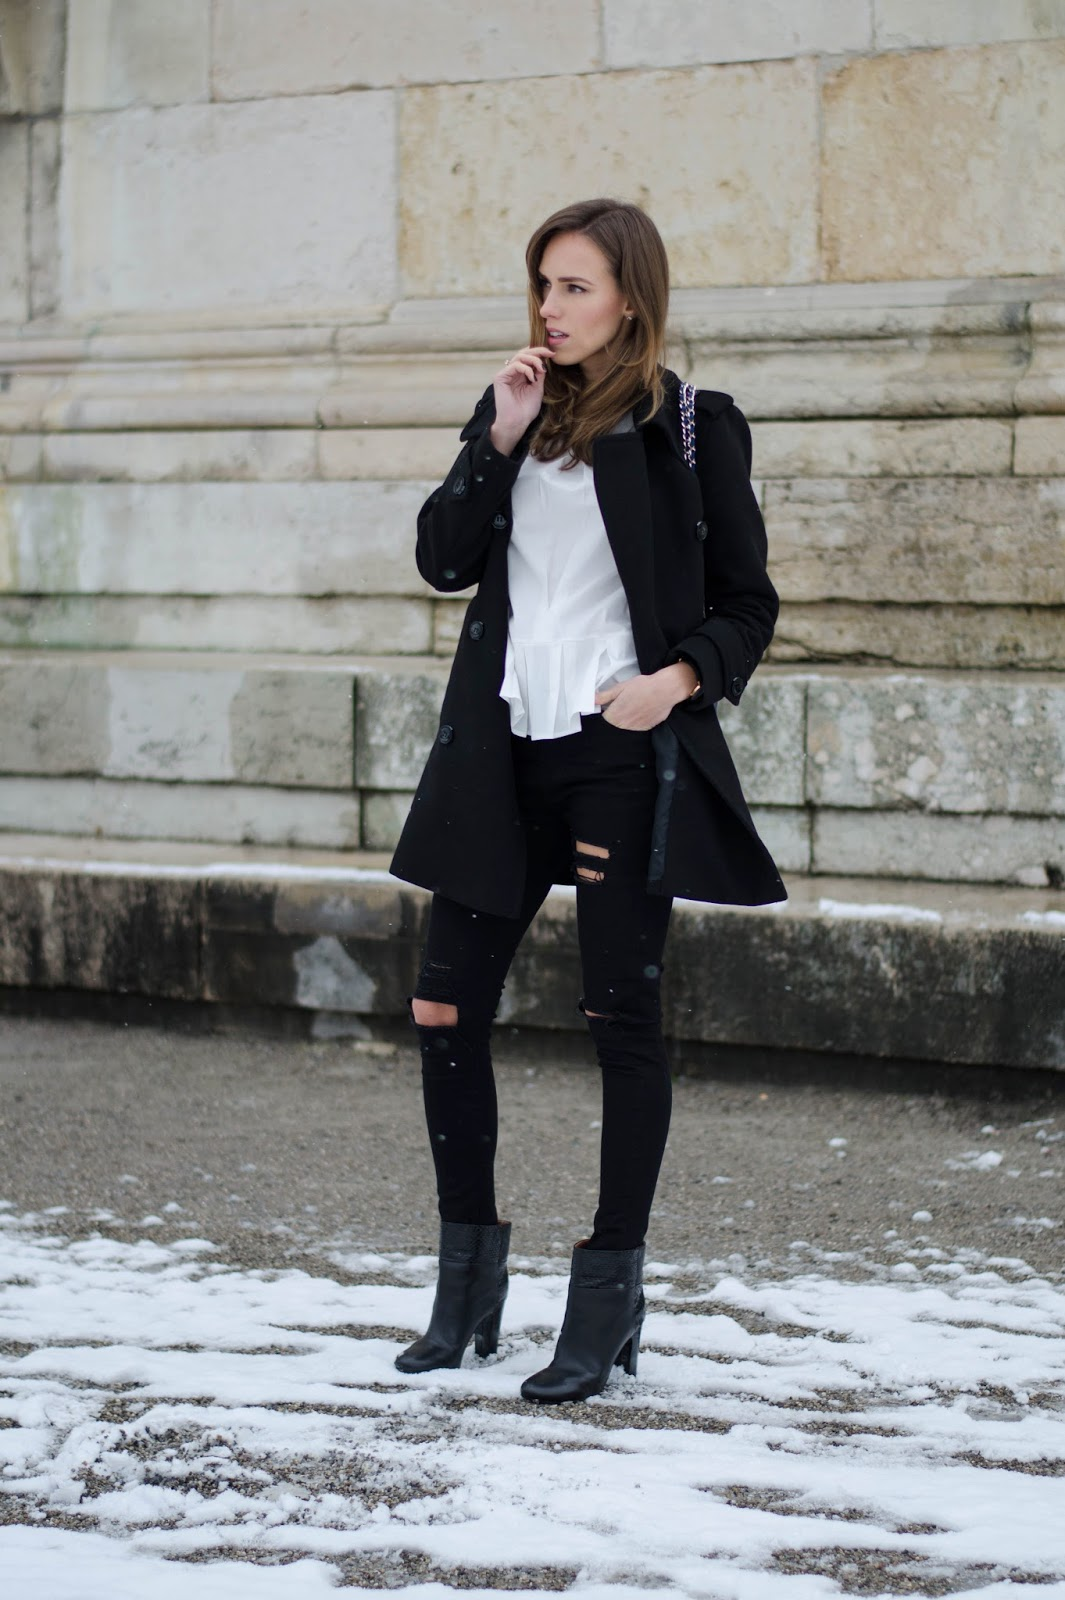 kristjaana mere black peacoat ripped skinny jeans white shirt winter outfit